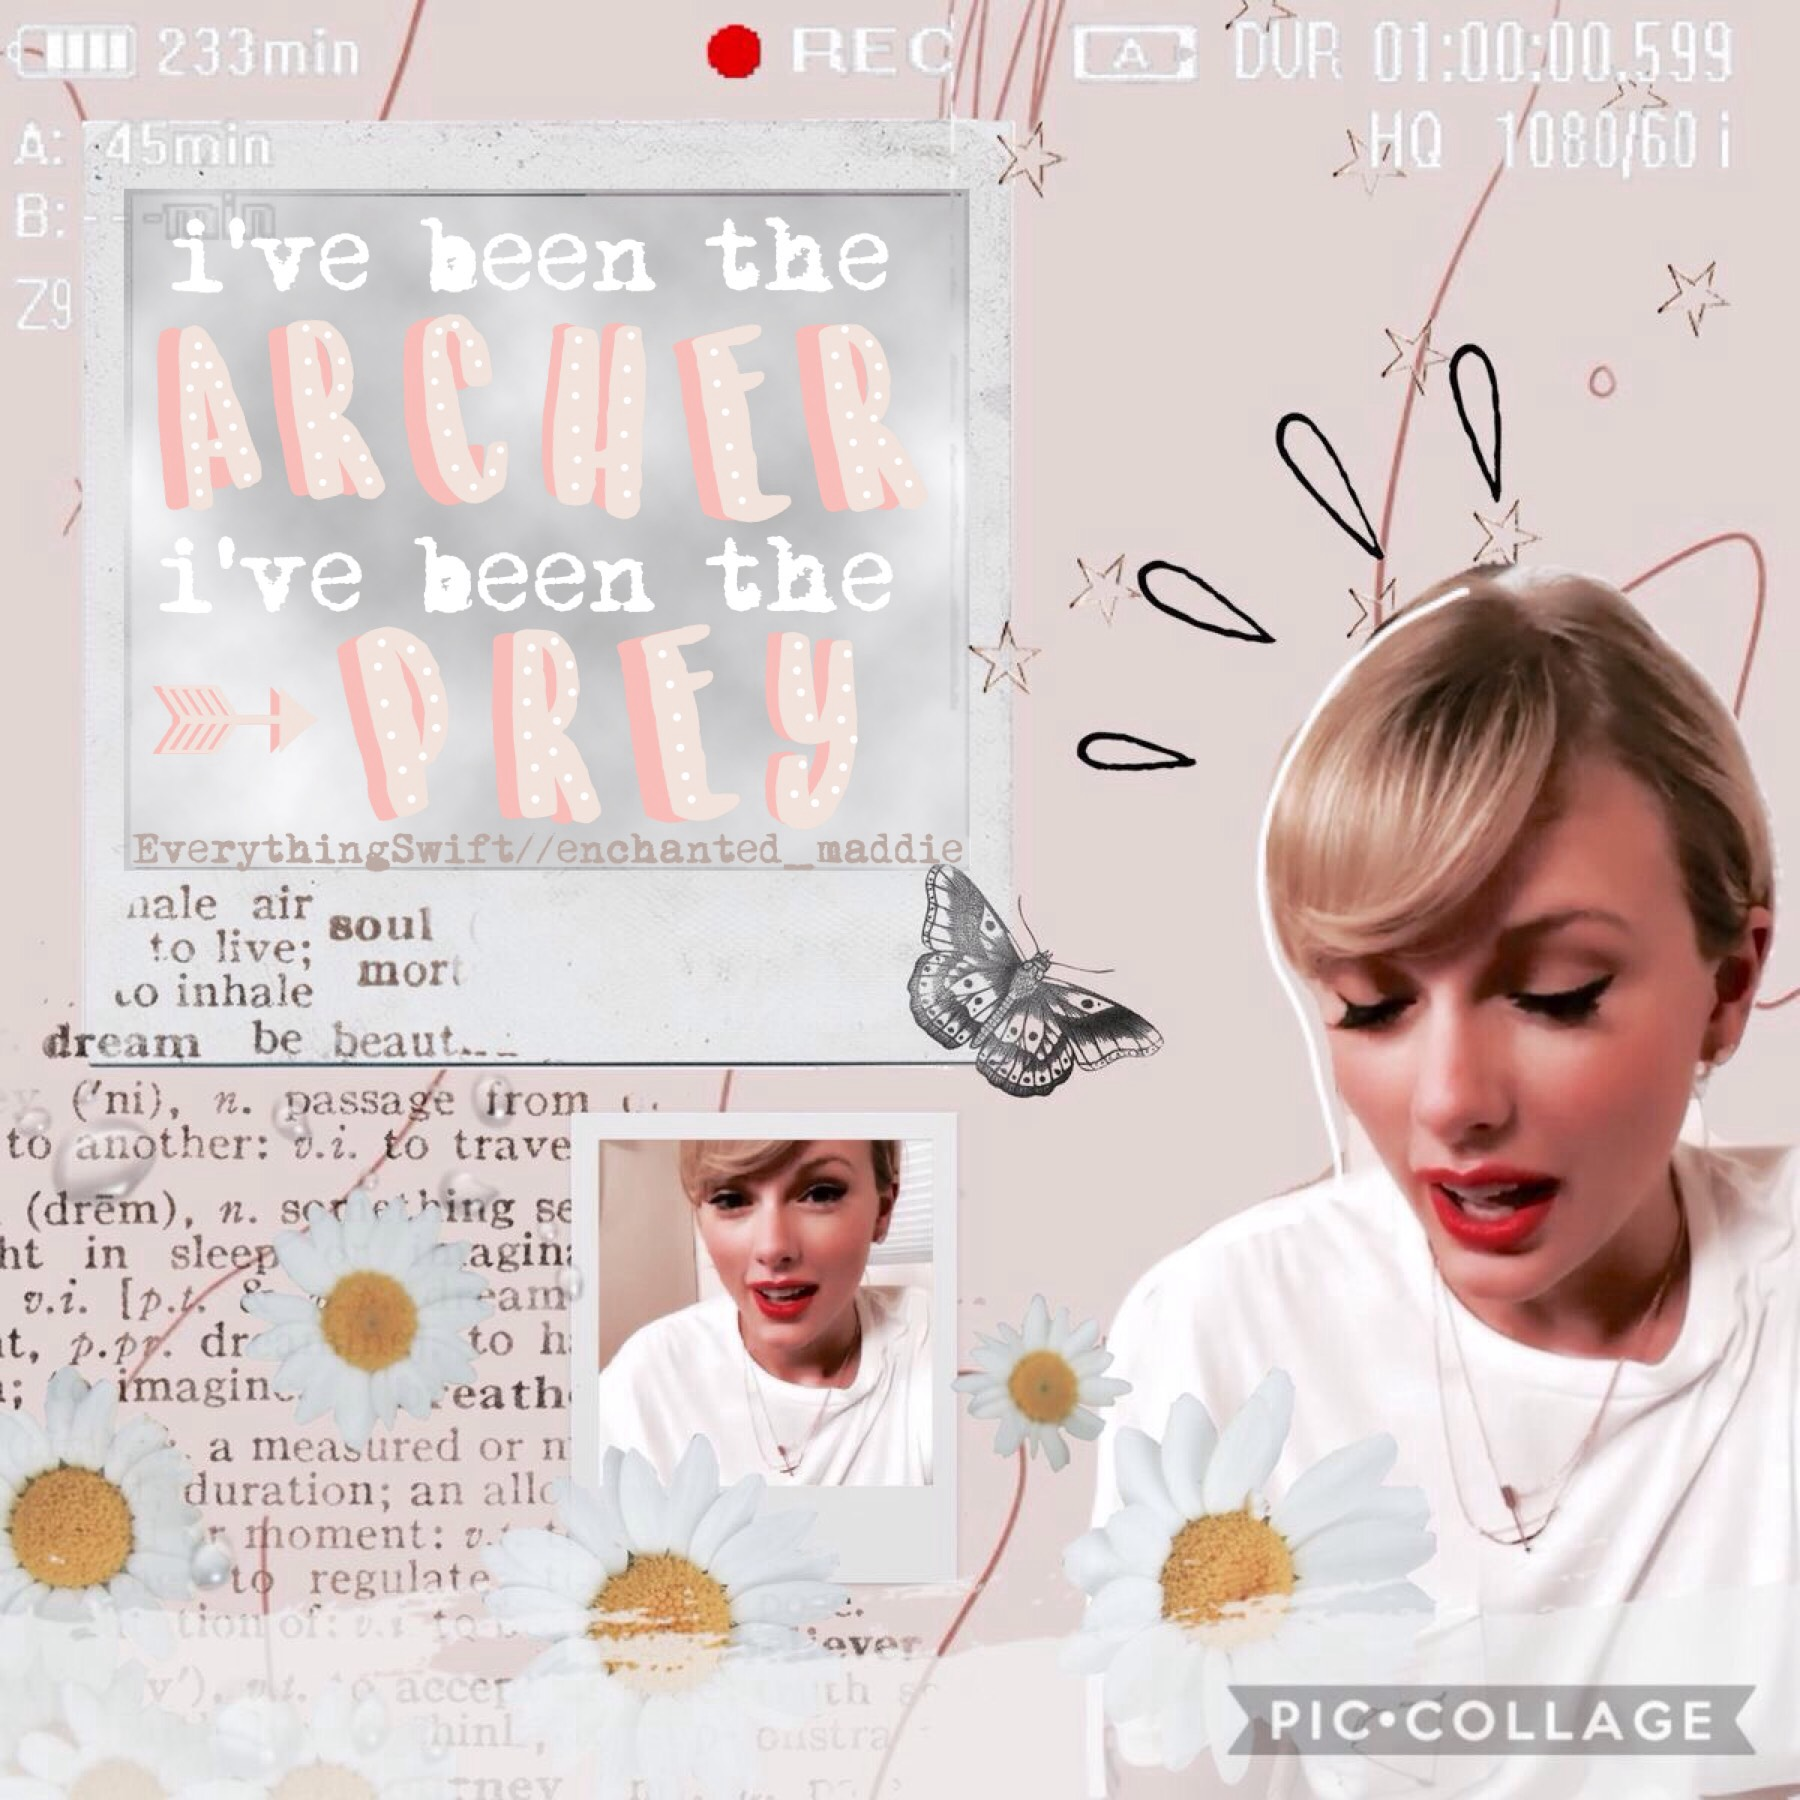 ✰ t a p  f o r  c o l l a b ✰ collab with new bestie enchanted_maddie she's new but deserve sm more love and support! also the archer (taylor's new song) is so freaking perfect! qotd: fav song on lover so far? aotd: the archer, it's just so meaningful